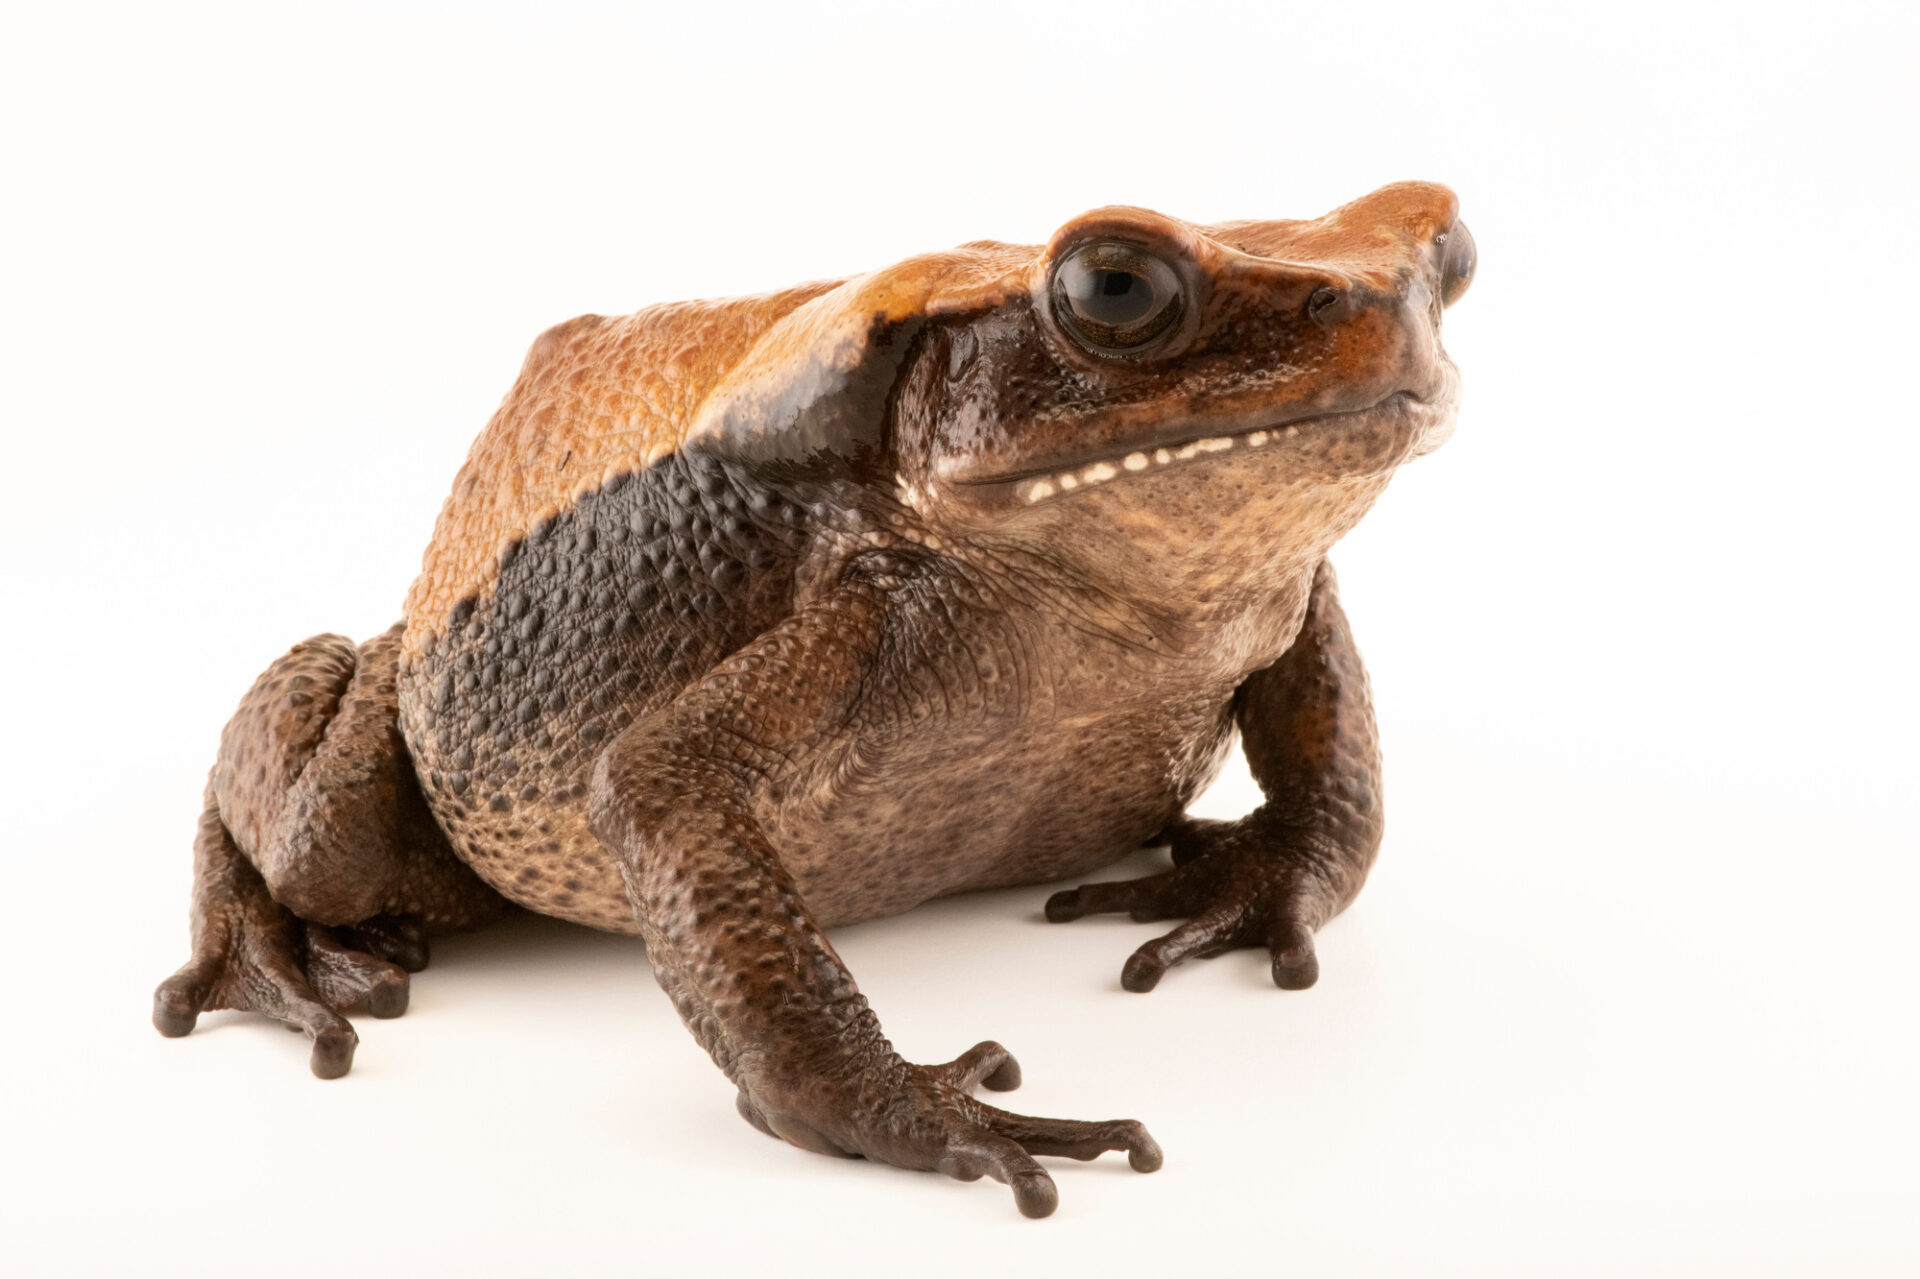 Photo: A giant Blomberg toad (Rhaebo blombergi) at Centro Jambatu in Quito, Ecuador.